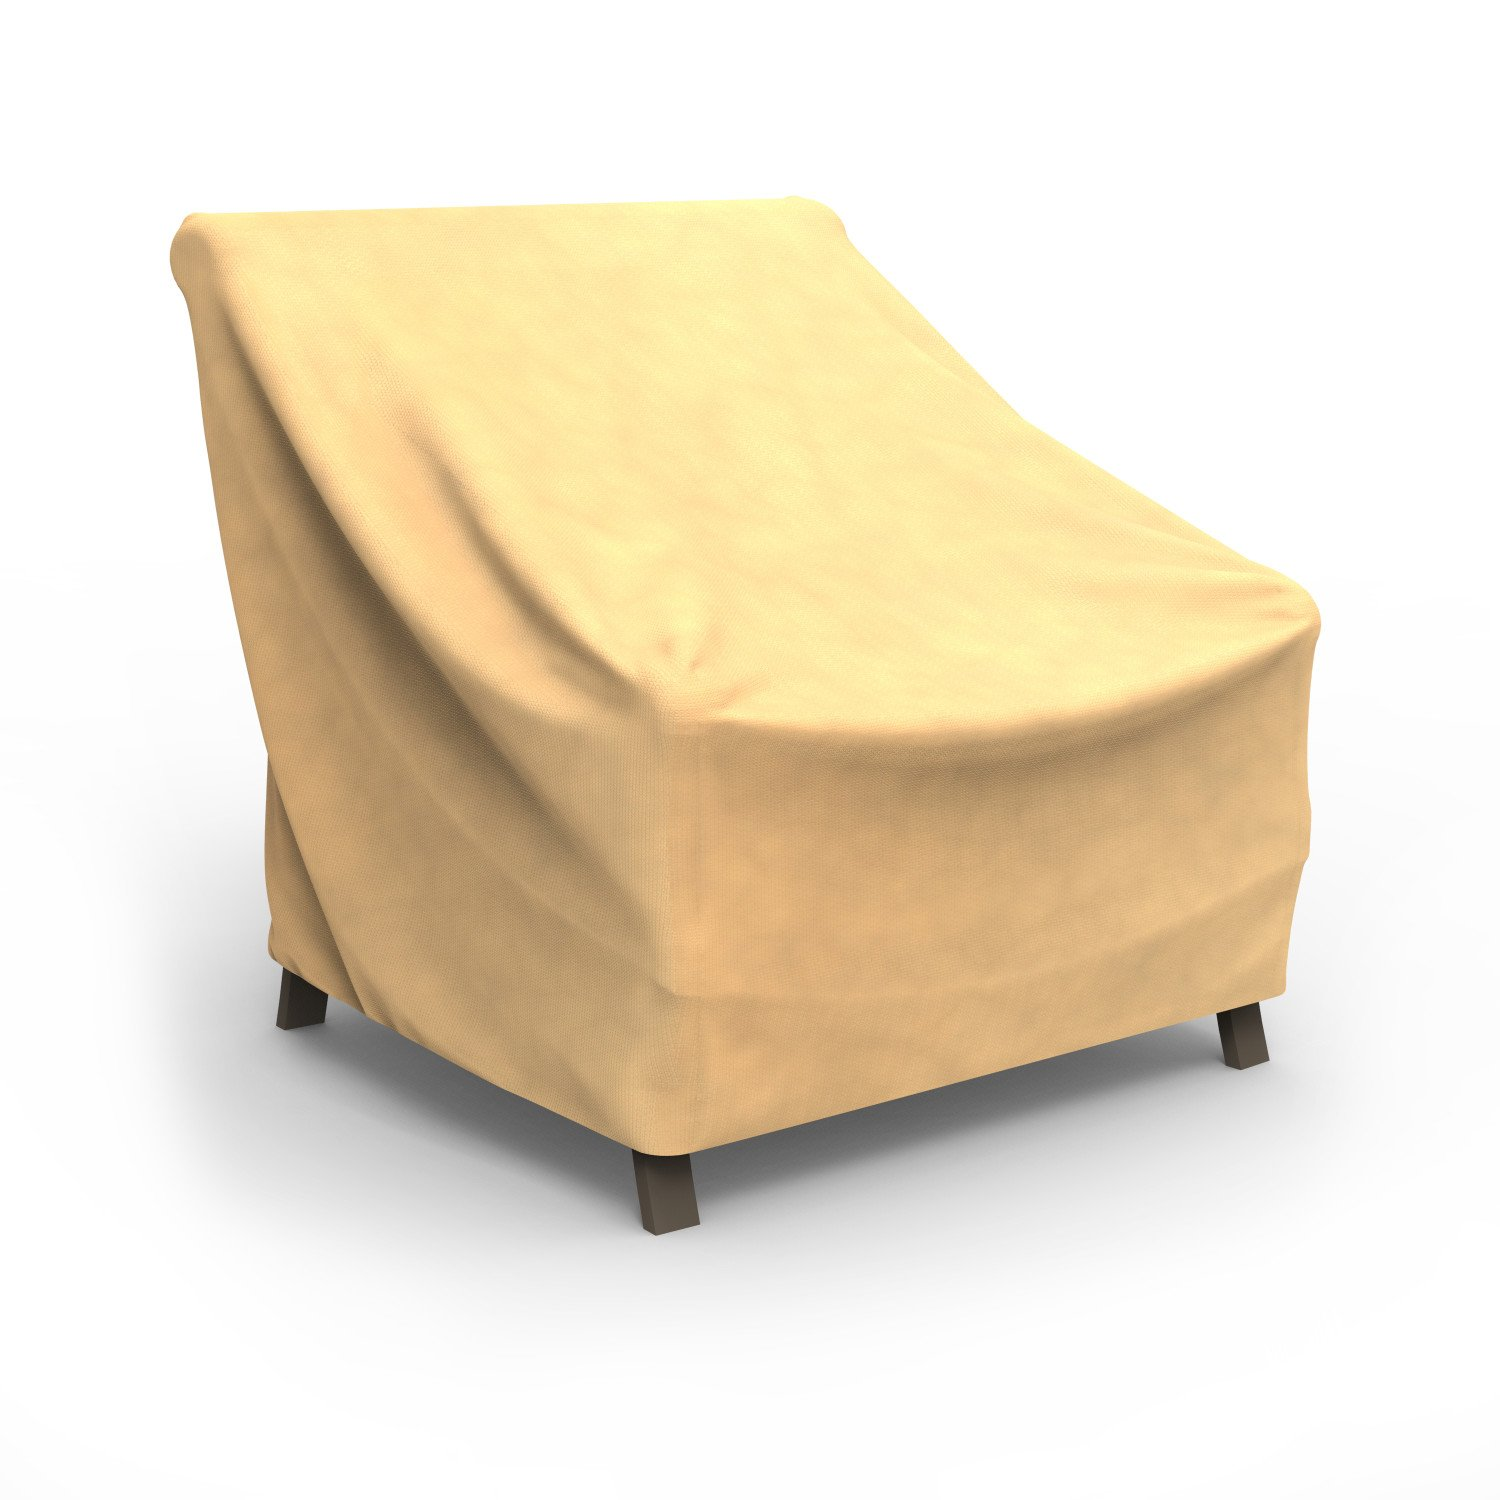 Budge All-Seasons Extra Large Outdoor Chair Cover P1W04SF1, Tan (39 H x 37 W x 41 D) Budge Industries